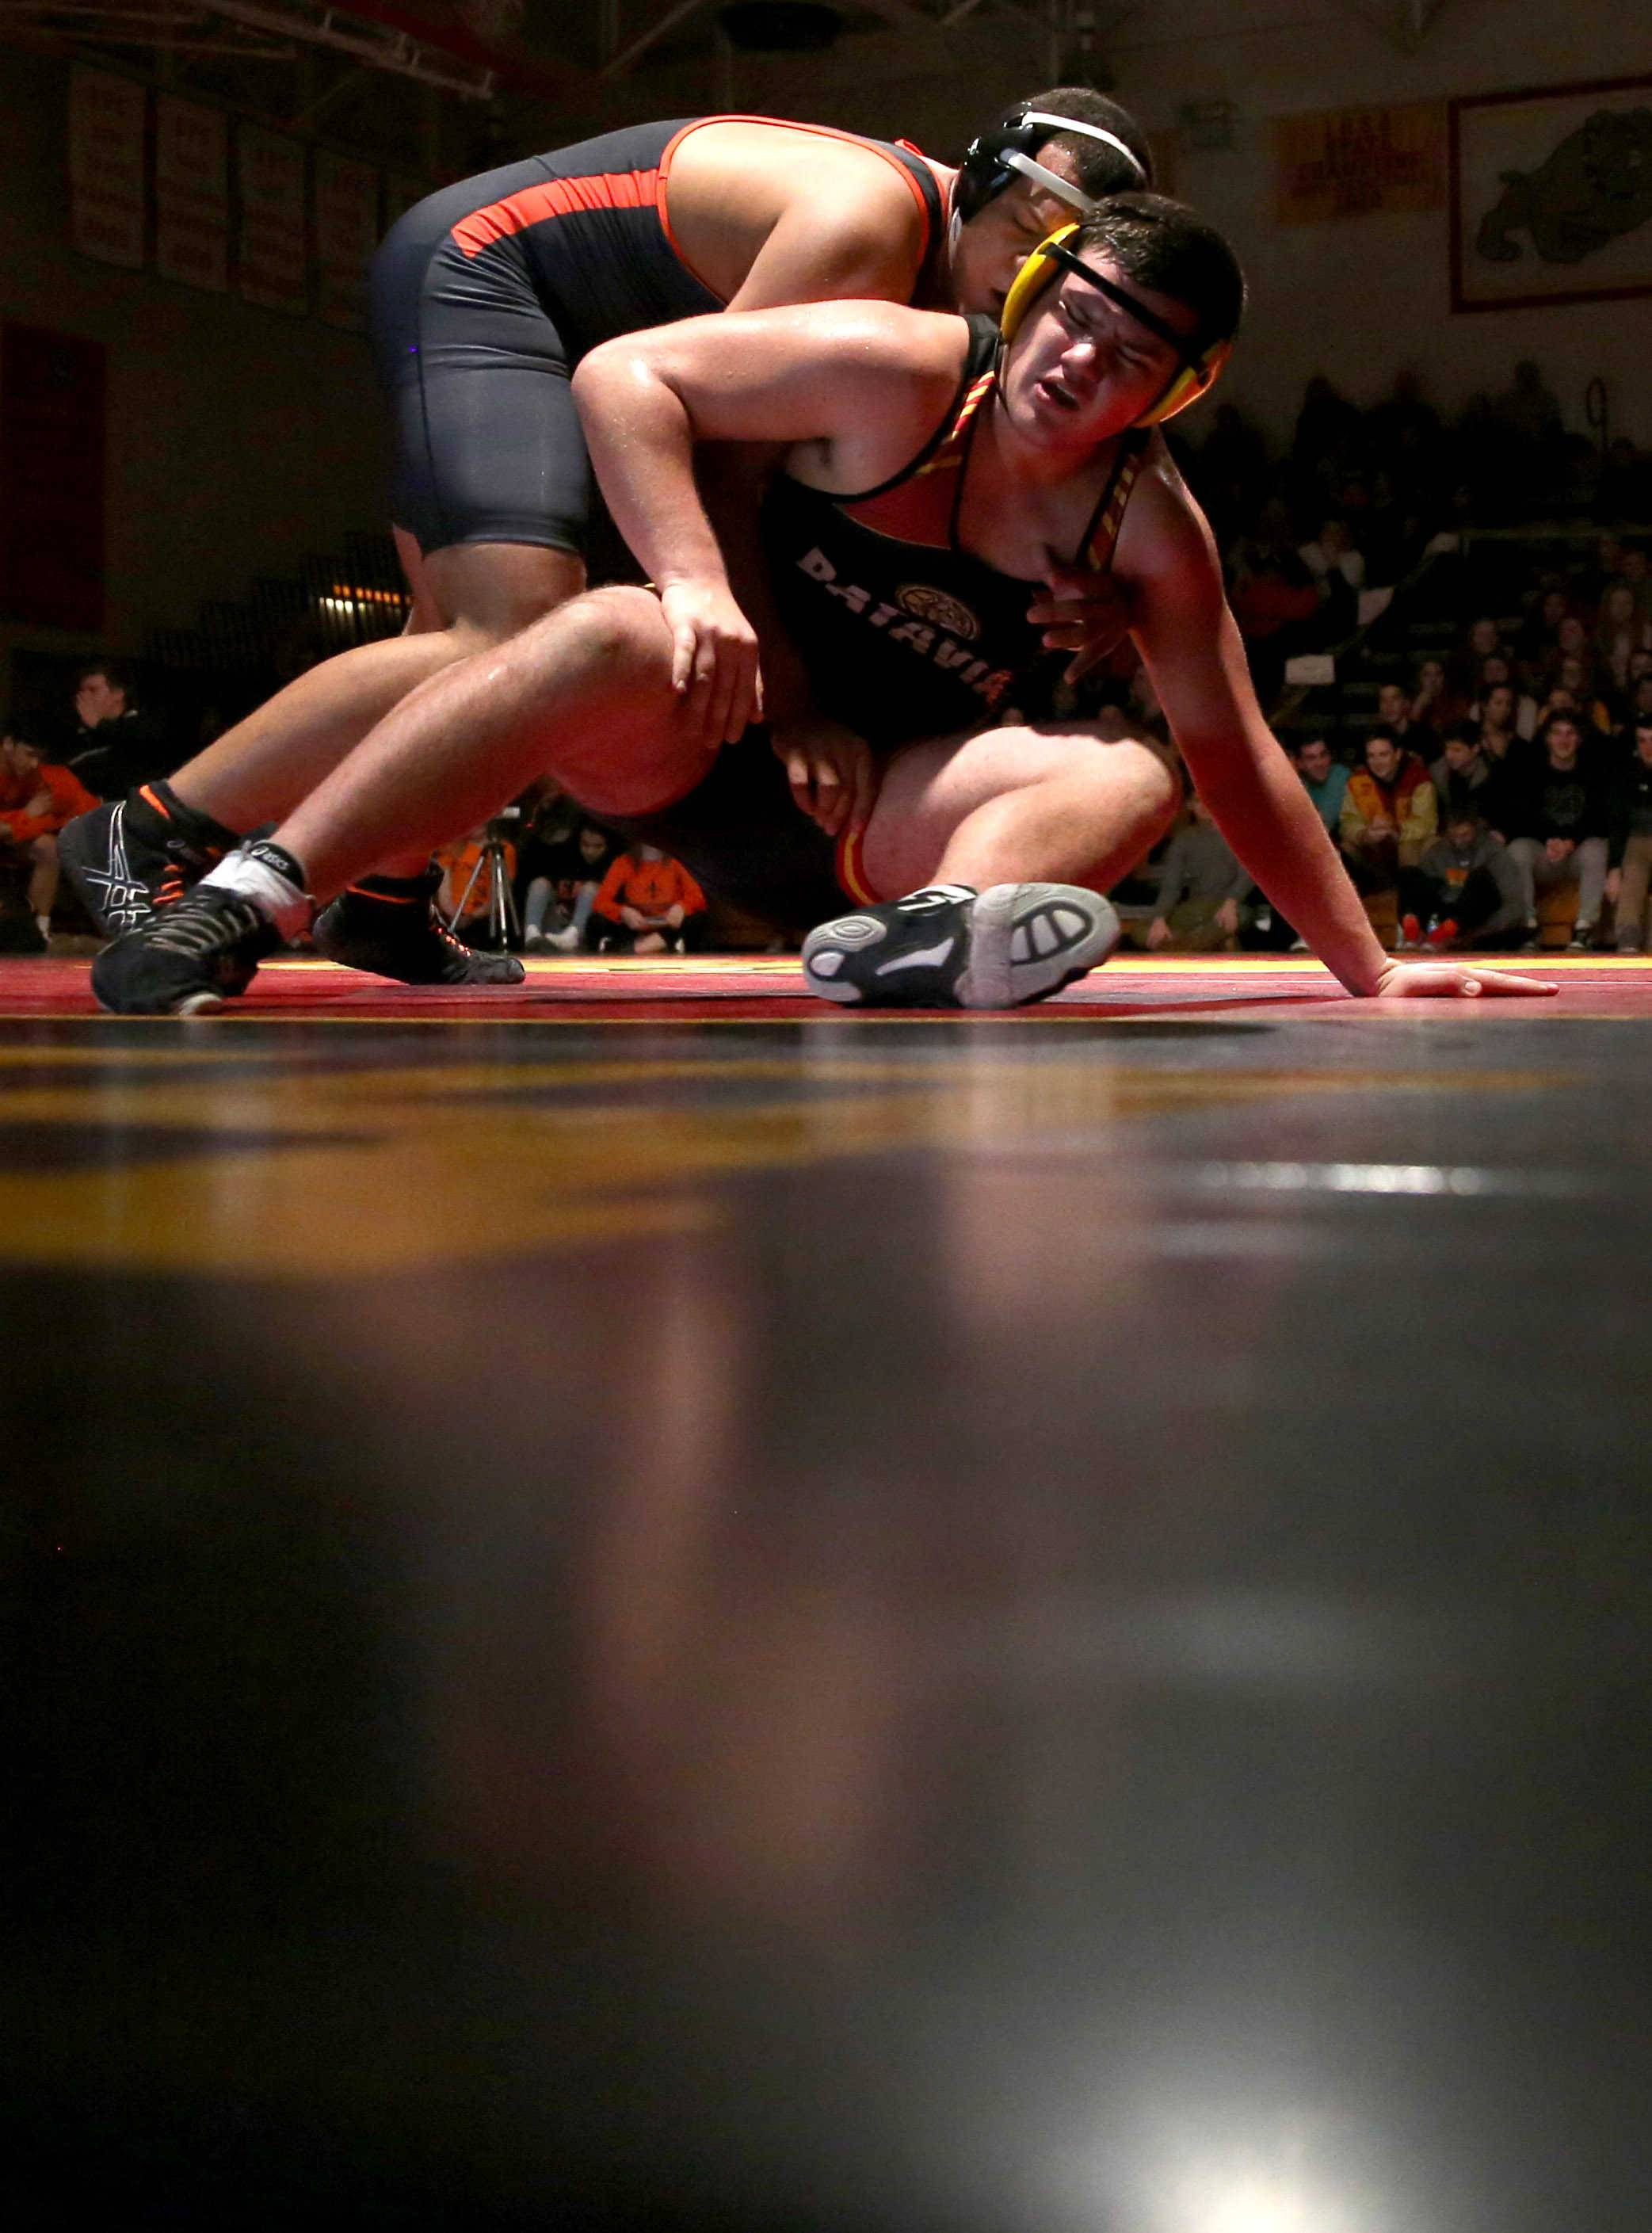 St. Charles East's Darrell Gregg battles Batavia's Jack Darby, front, at 220 pounds during a varsity wrestling meet at Batavia Tuesday night.